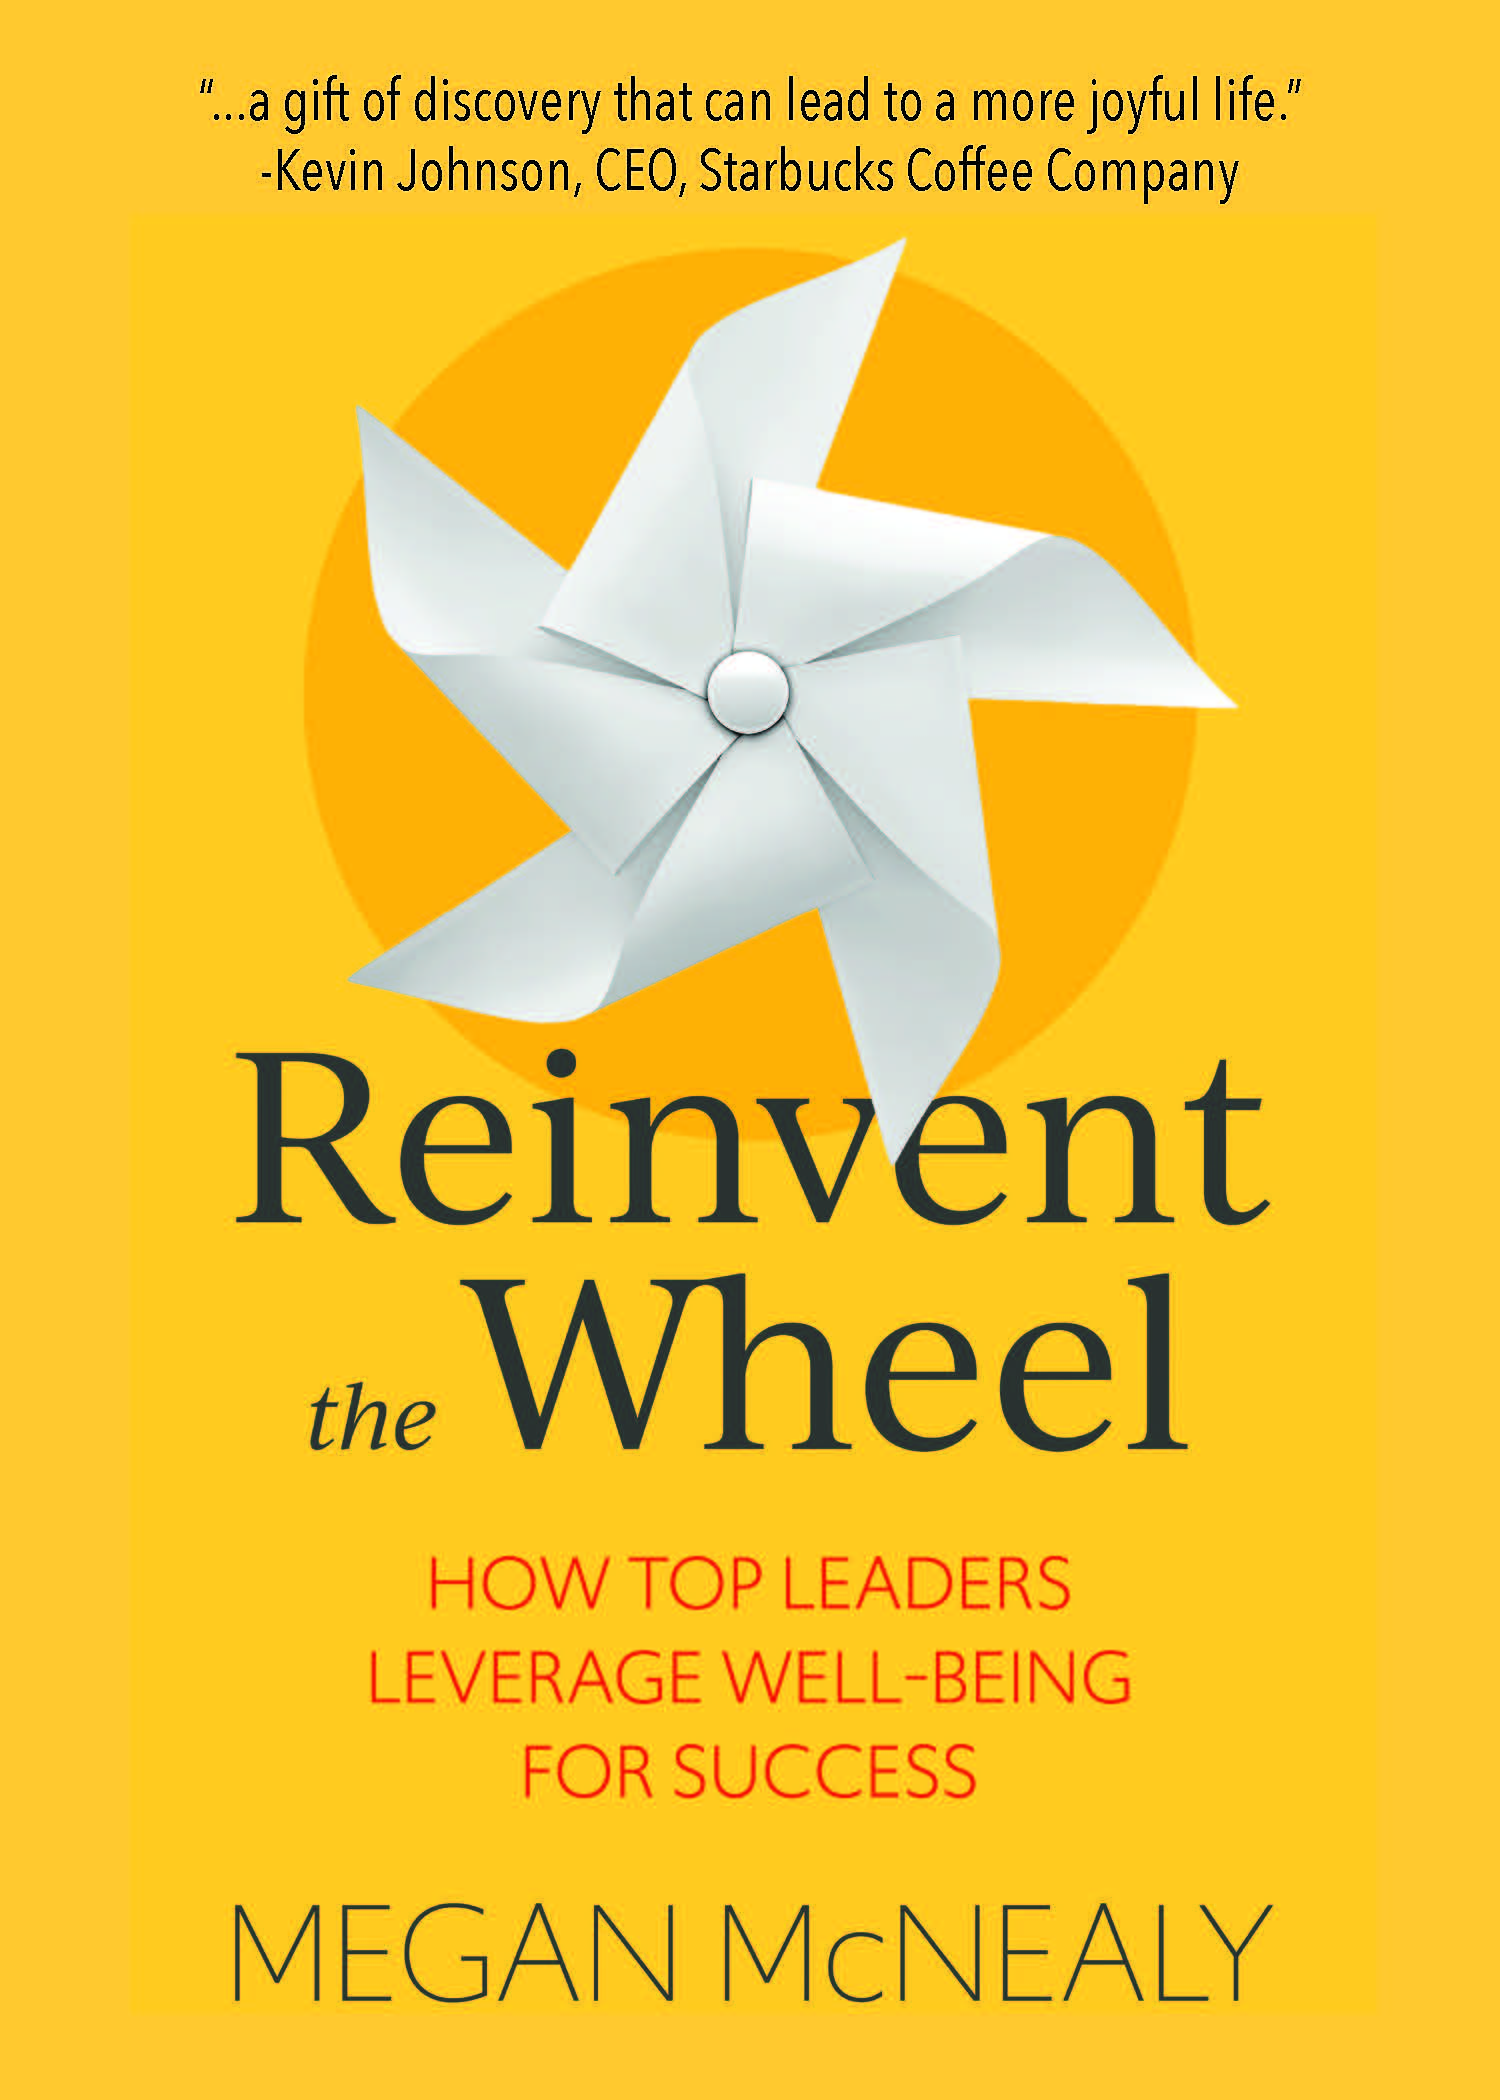 Postcard - Reinvent The Wheel2_Page_1.jpg